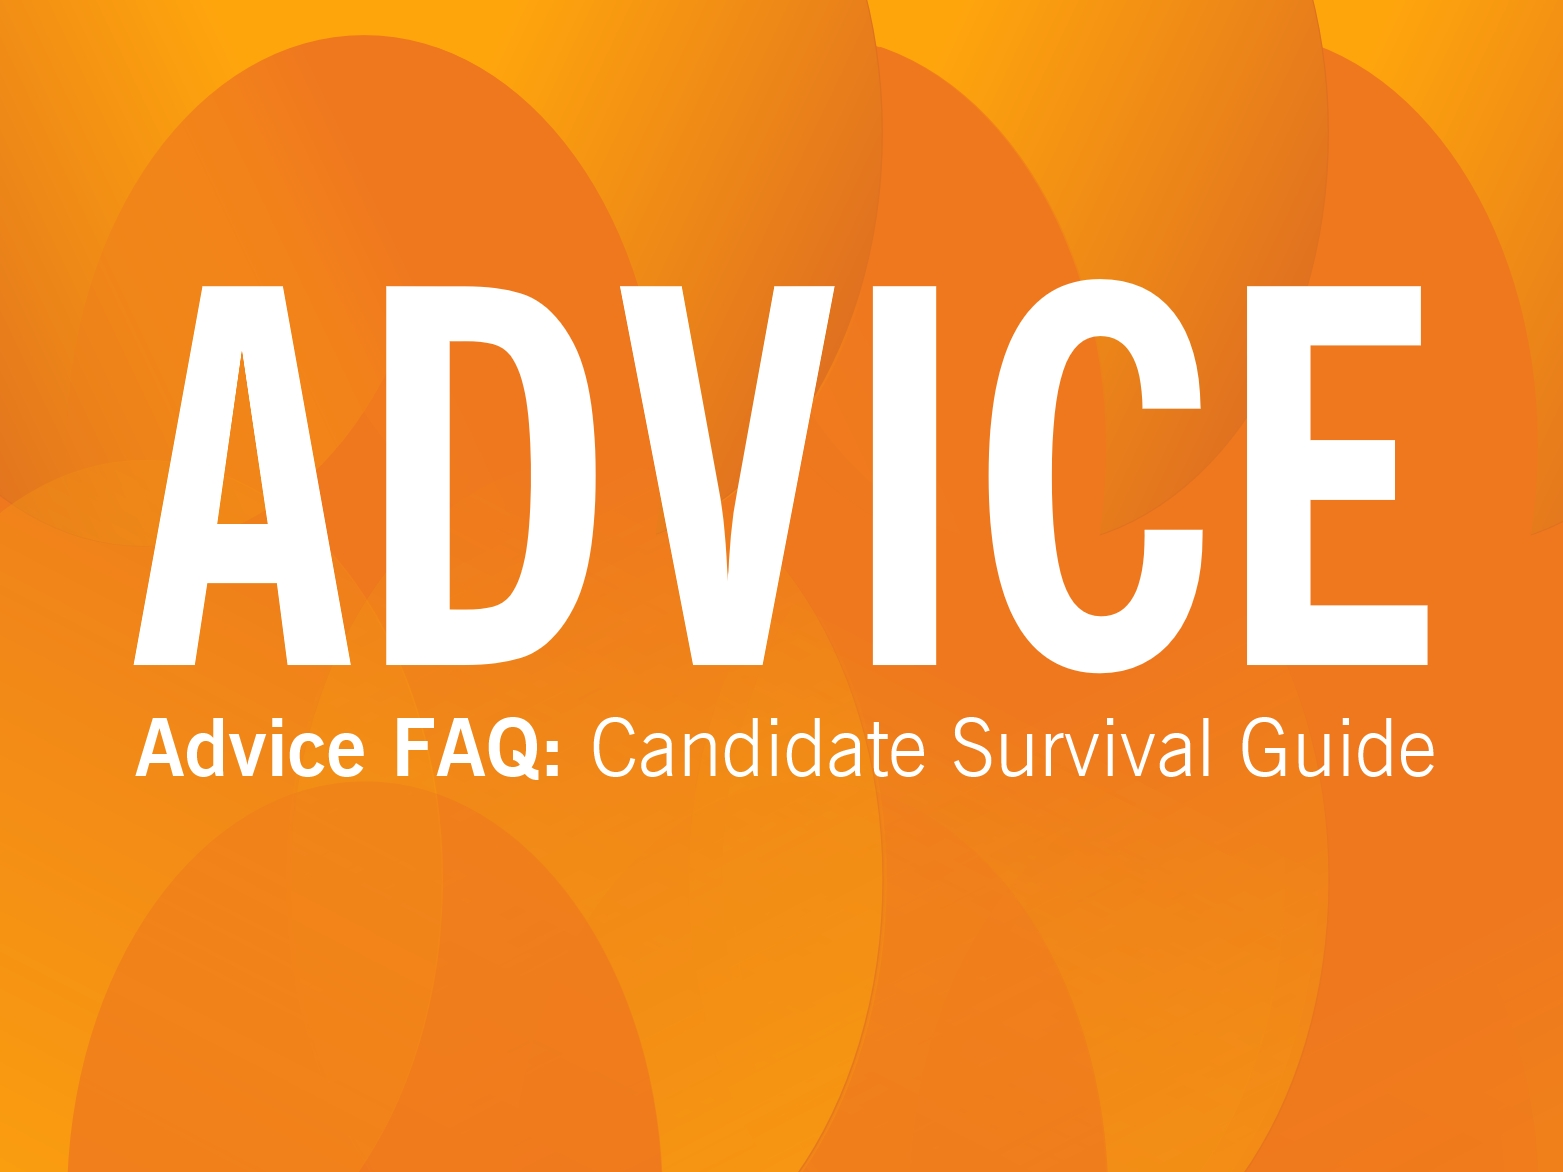 ADVICE: Candidate survival guide